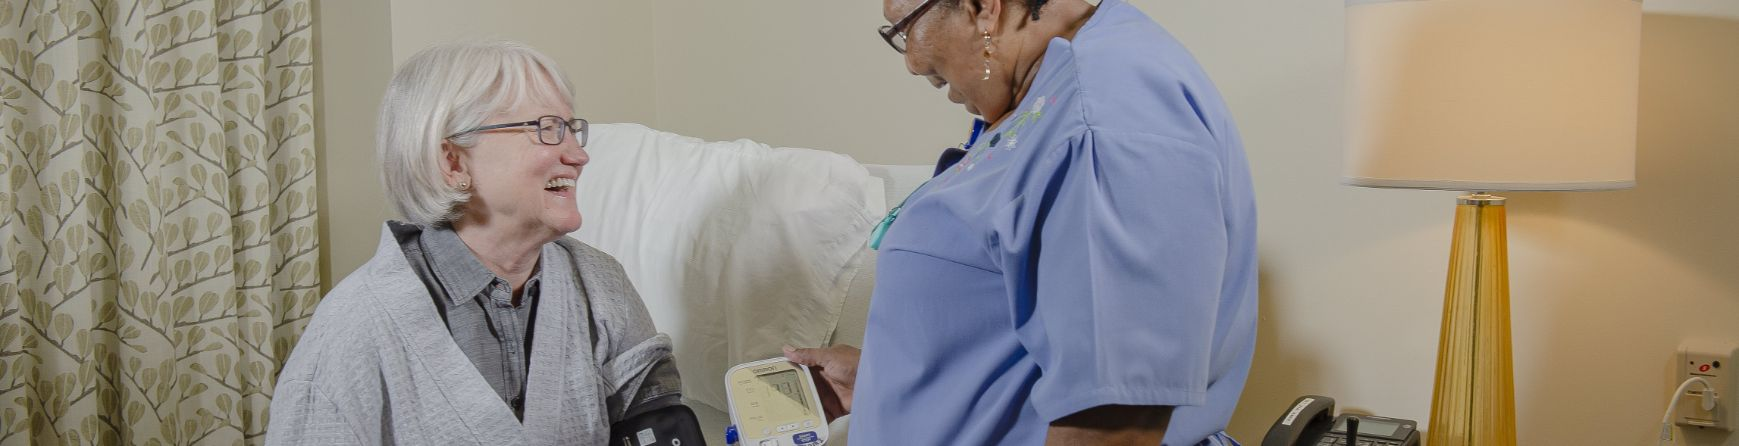 resident getting her blood pressure checked by a nurse